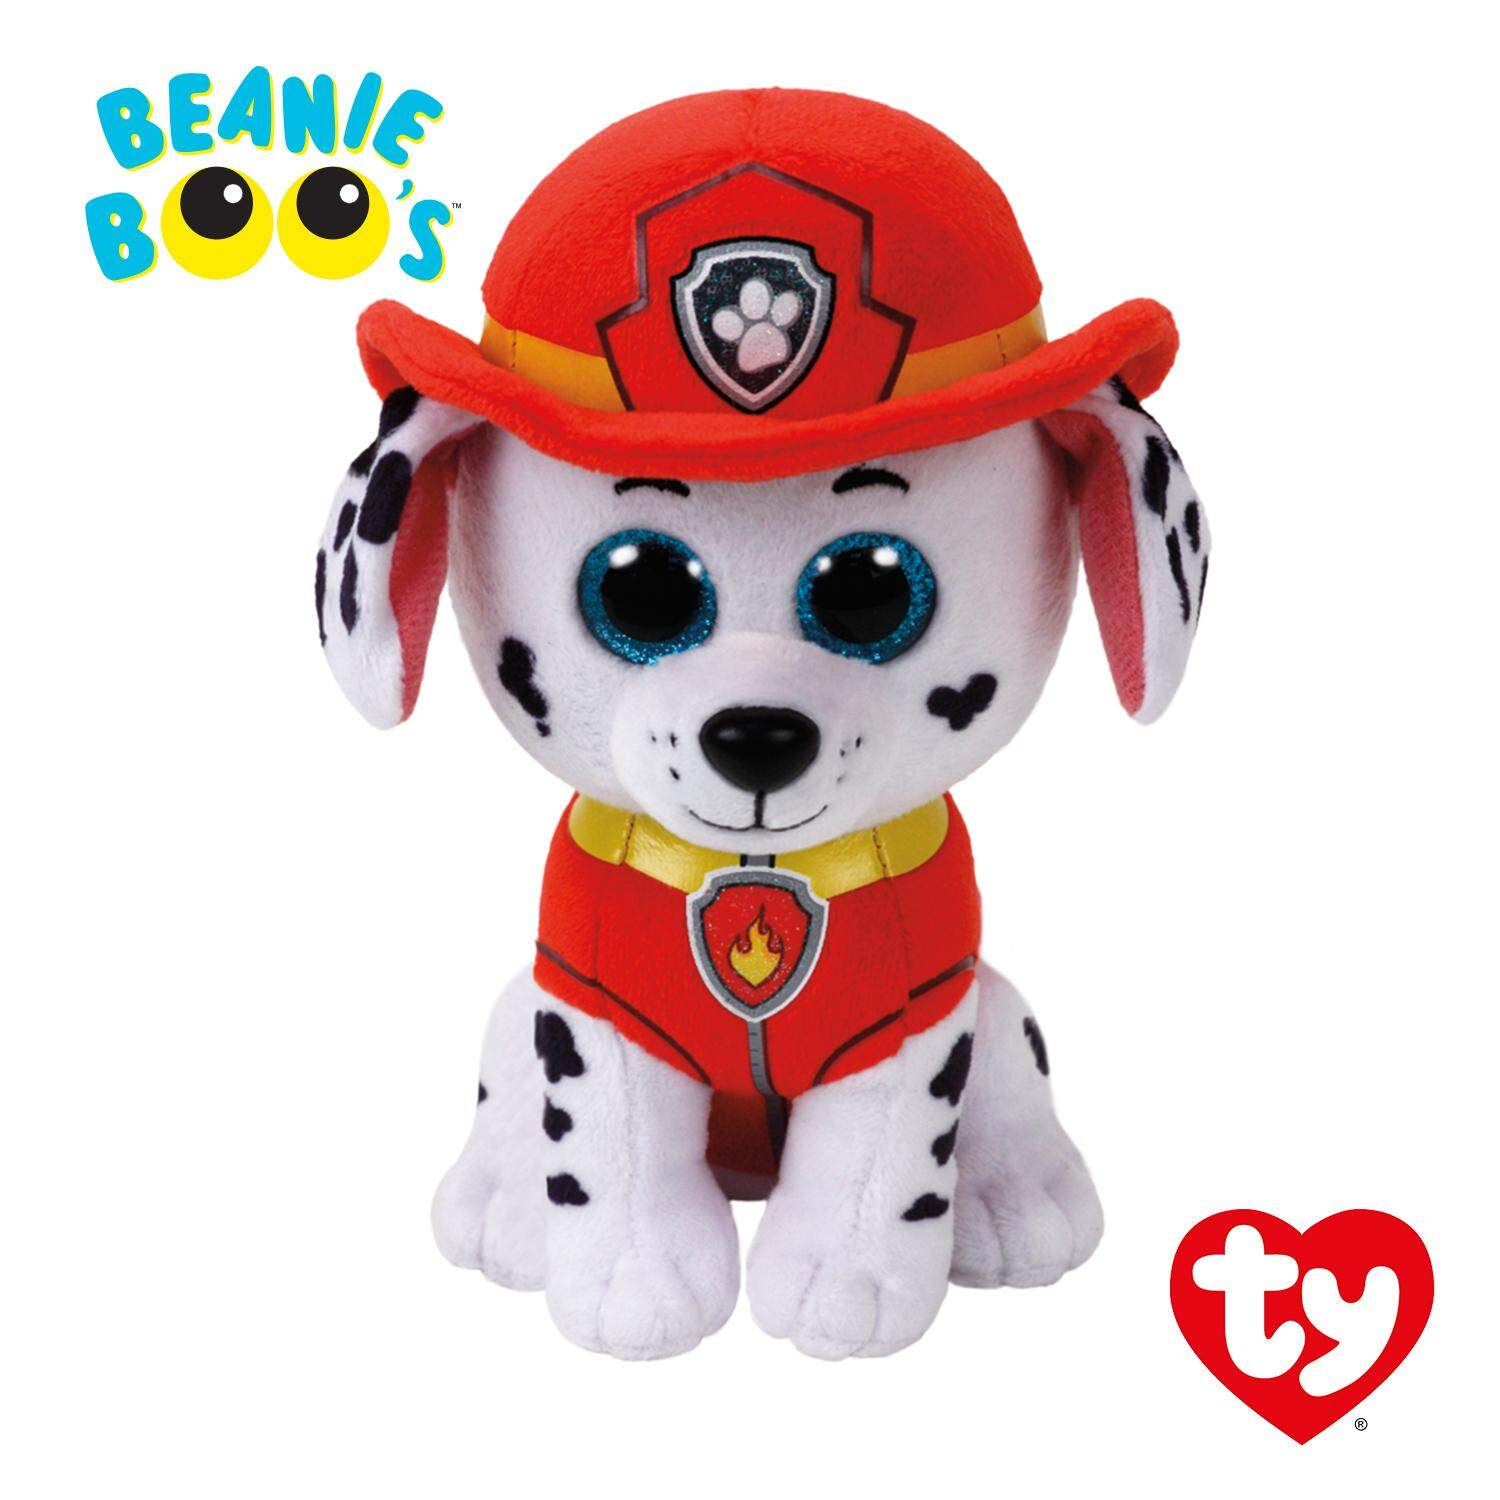 [AUTHENTIC] Marshall The Dalmation - PAW Patrol 6 inch / 15 cm TY Beanie Boos Plush Toy Birthday Gift for Boys Girls Kids toys for girls and boys